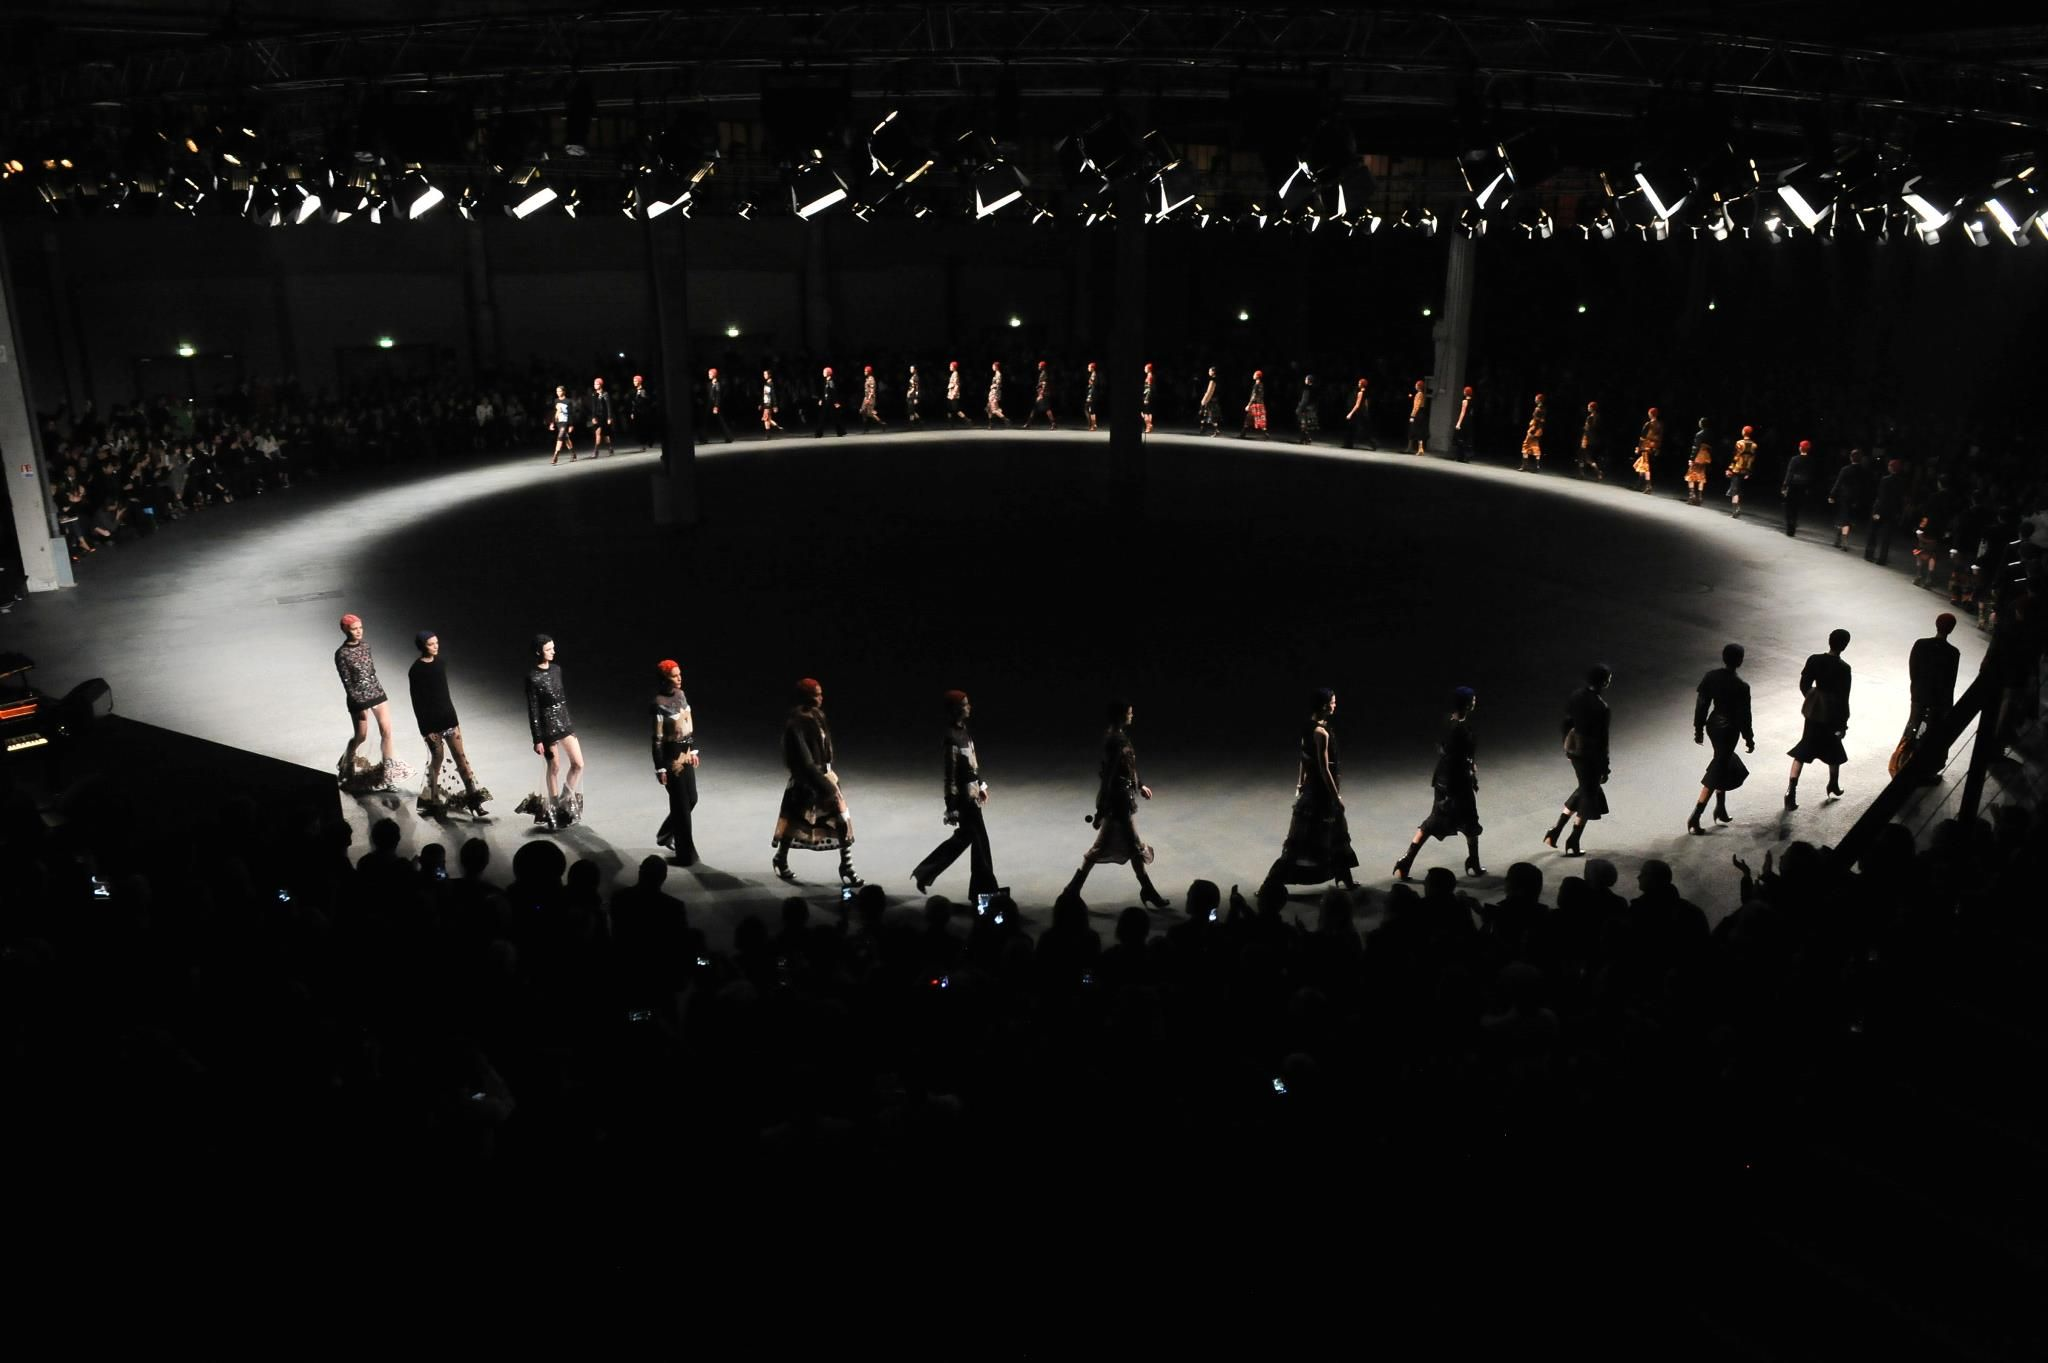 Givenchy f w 2013 fashion show stage design fashion show - Fashion show stage design architecture plans ...